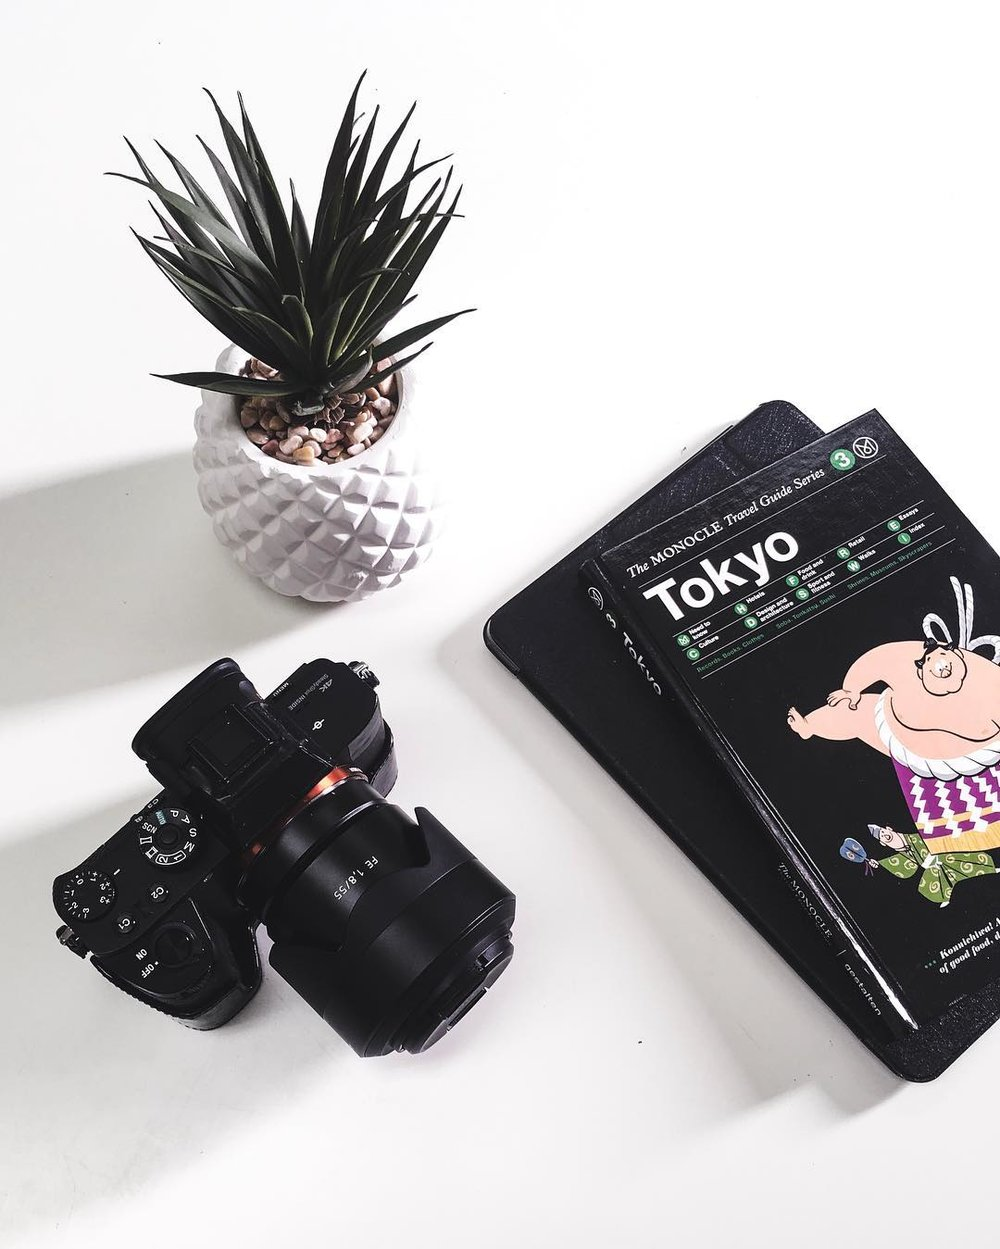 3. MONOCLE TRAVEL GUIDE SERIES: TOKYO - MONOCLE TRAVEL